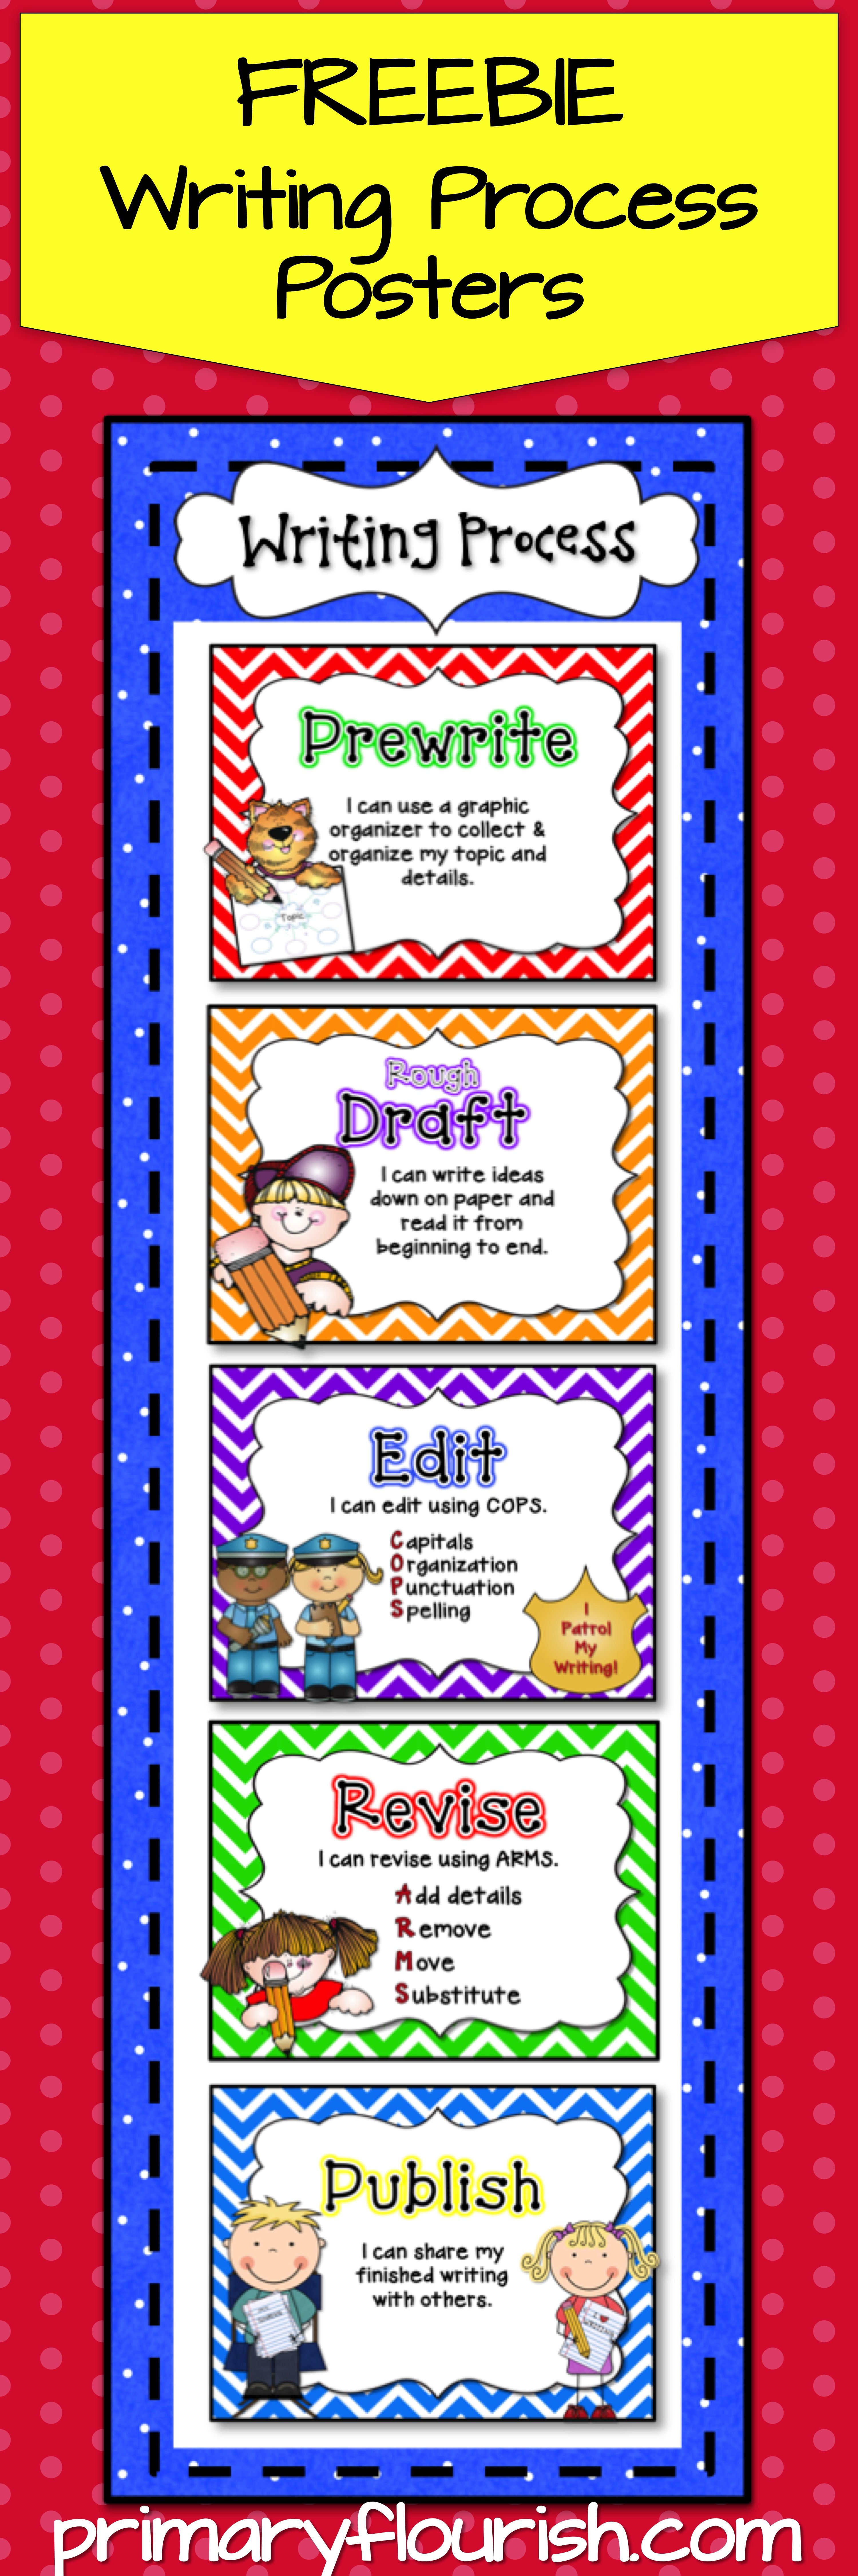 the writing process poster The colorful chalkboard design of the writing process chart is sure to capture the attention of your students while explaining the essential steps in the writing process.